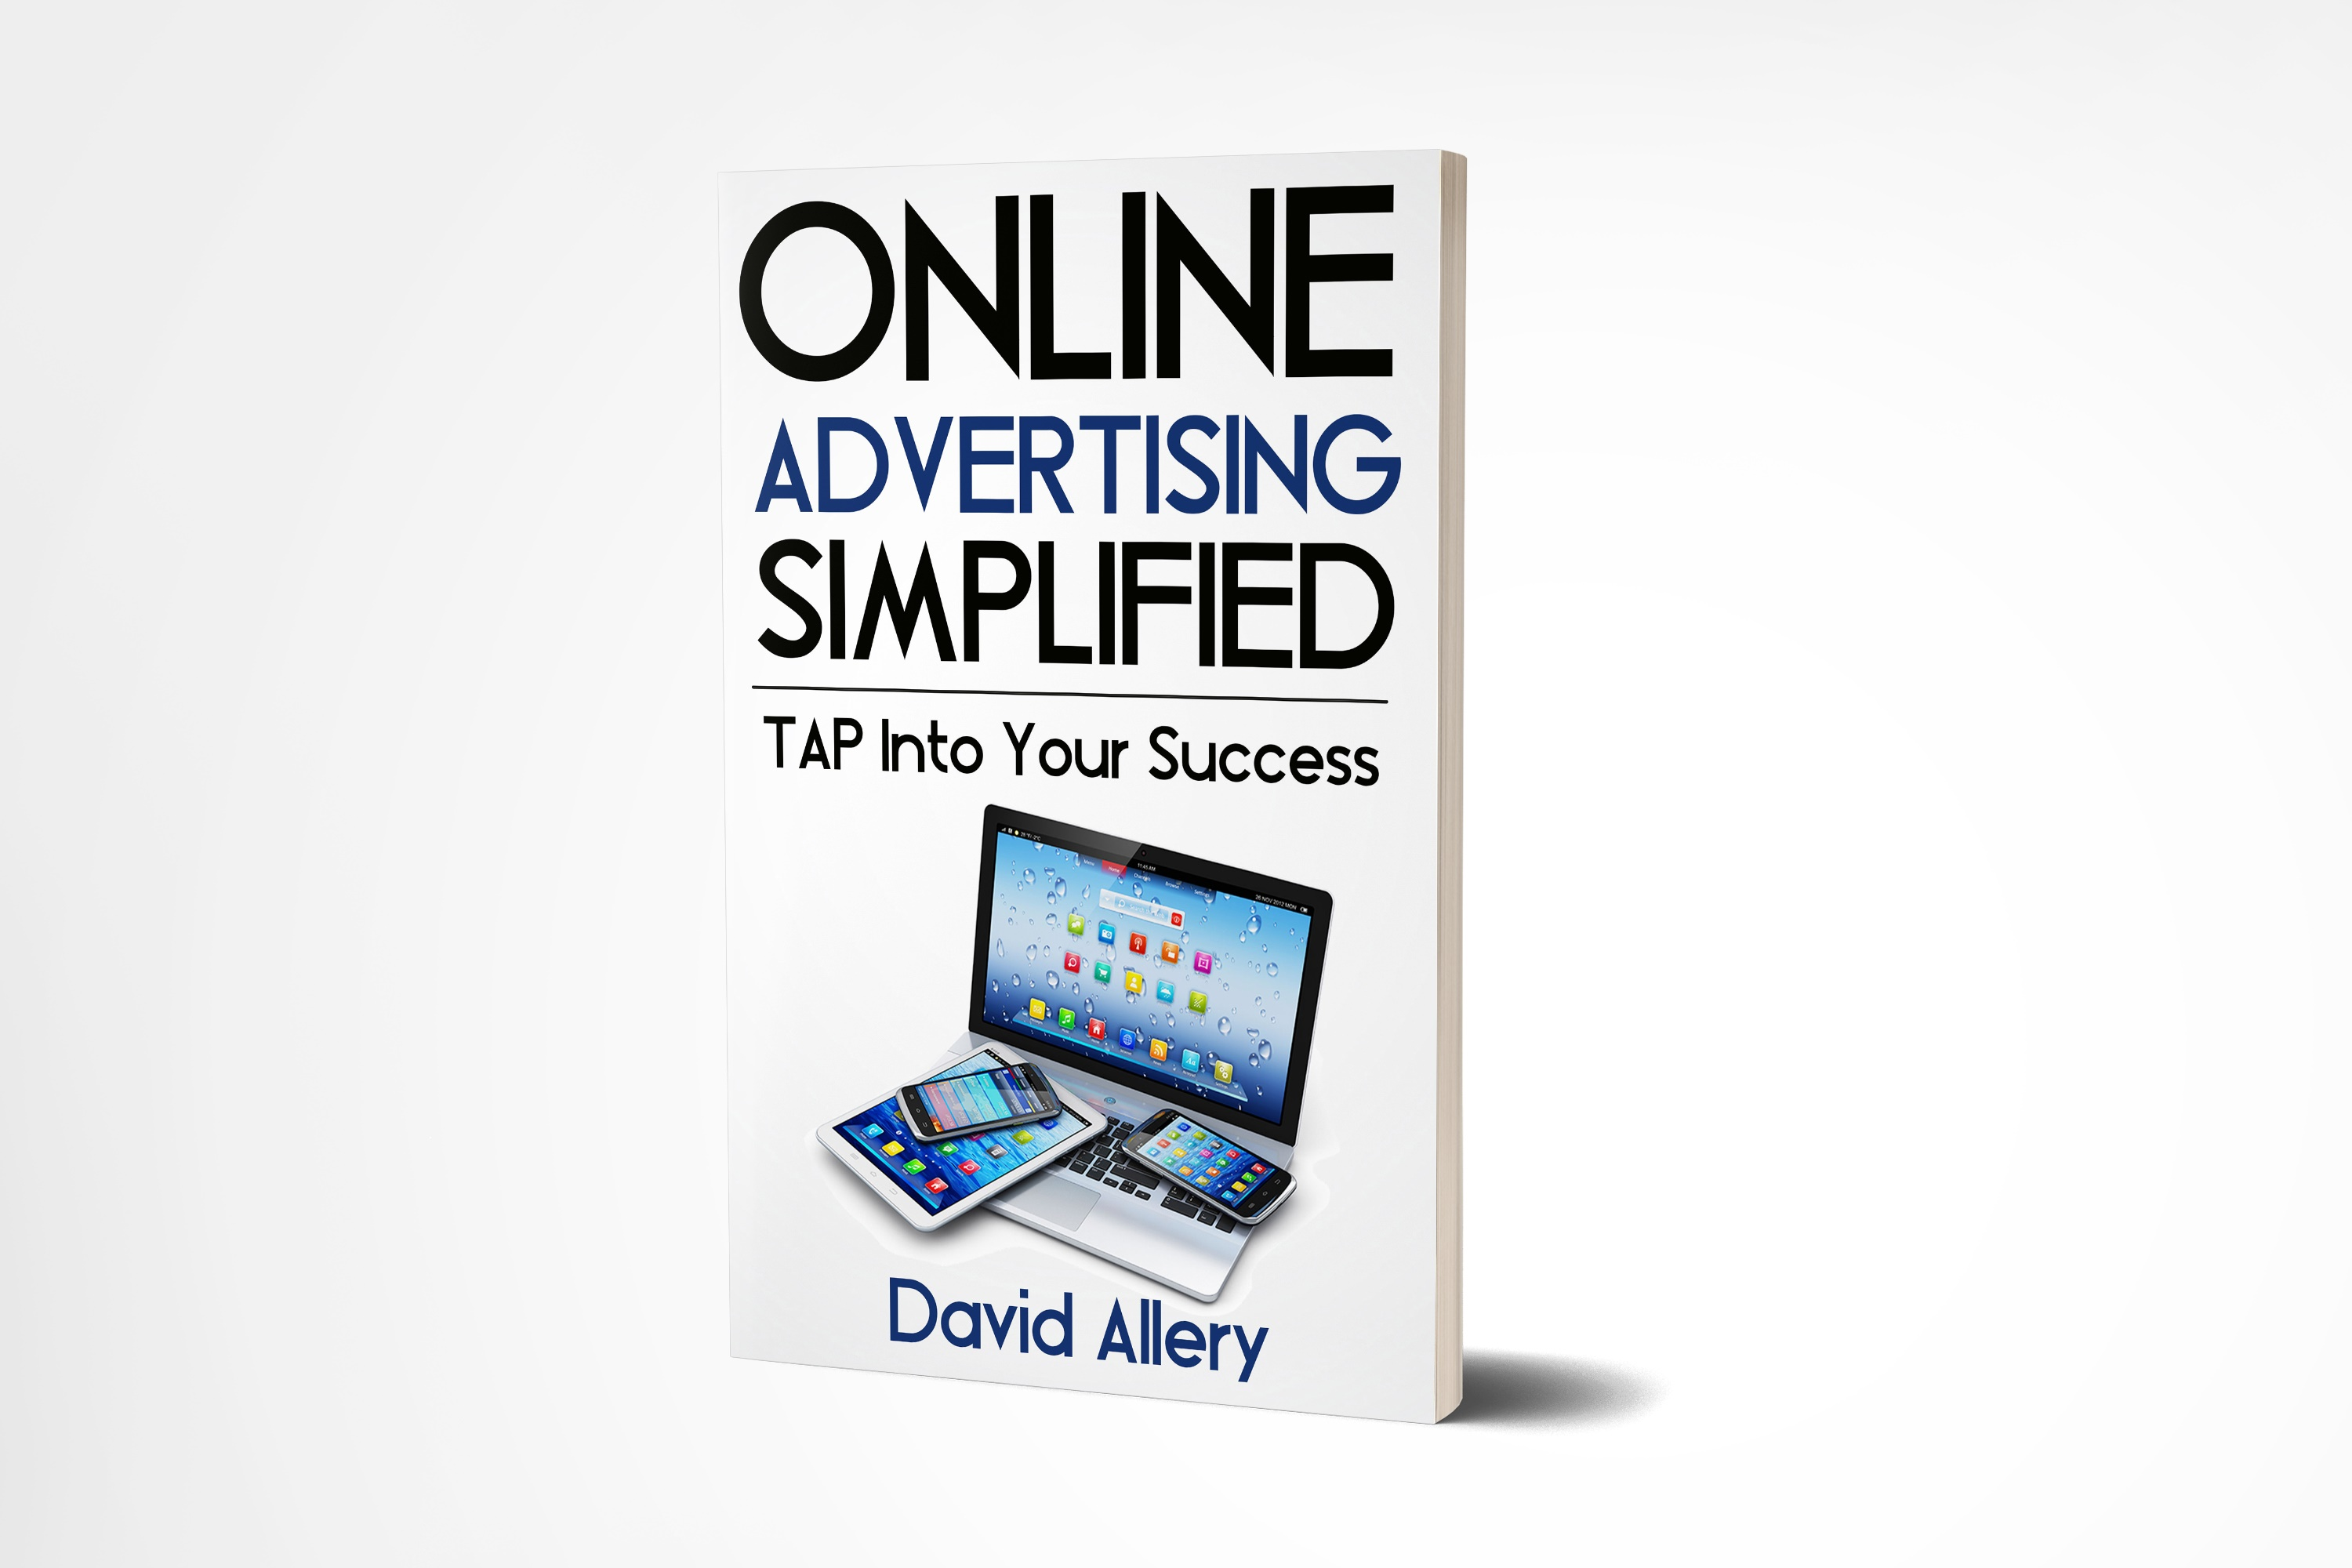 Take our eCourse and learn how to earn online with NO SELLING, NO RECRUITING and NO SPONSORING ever required to earn.